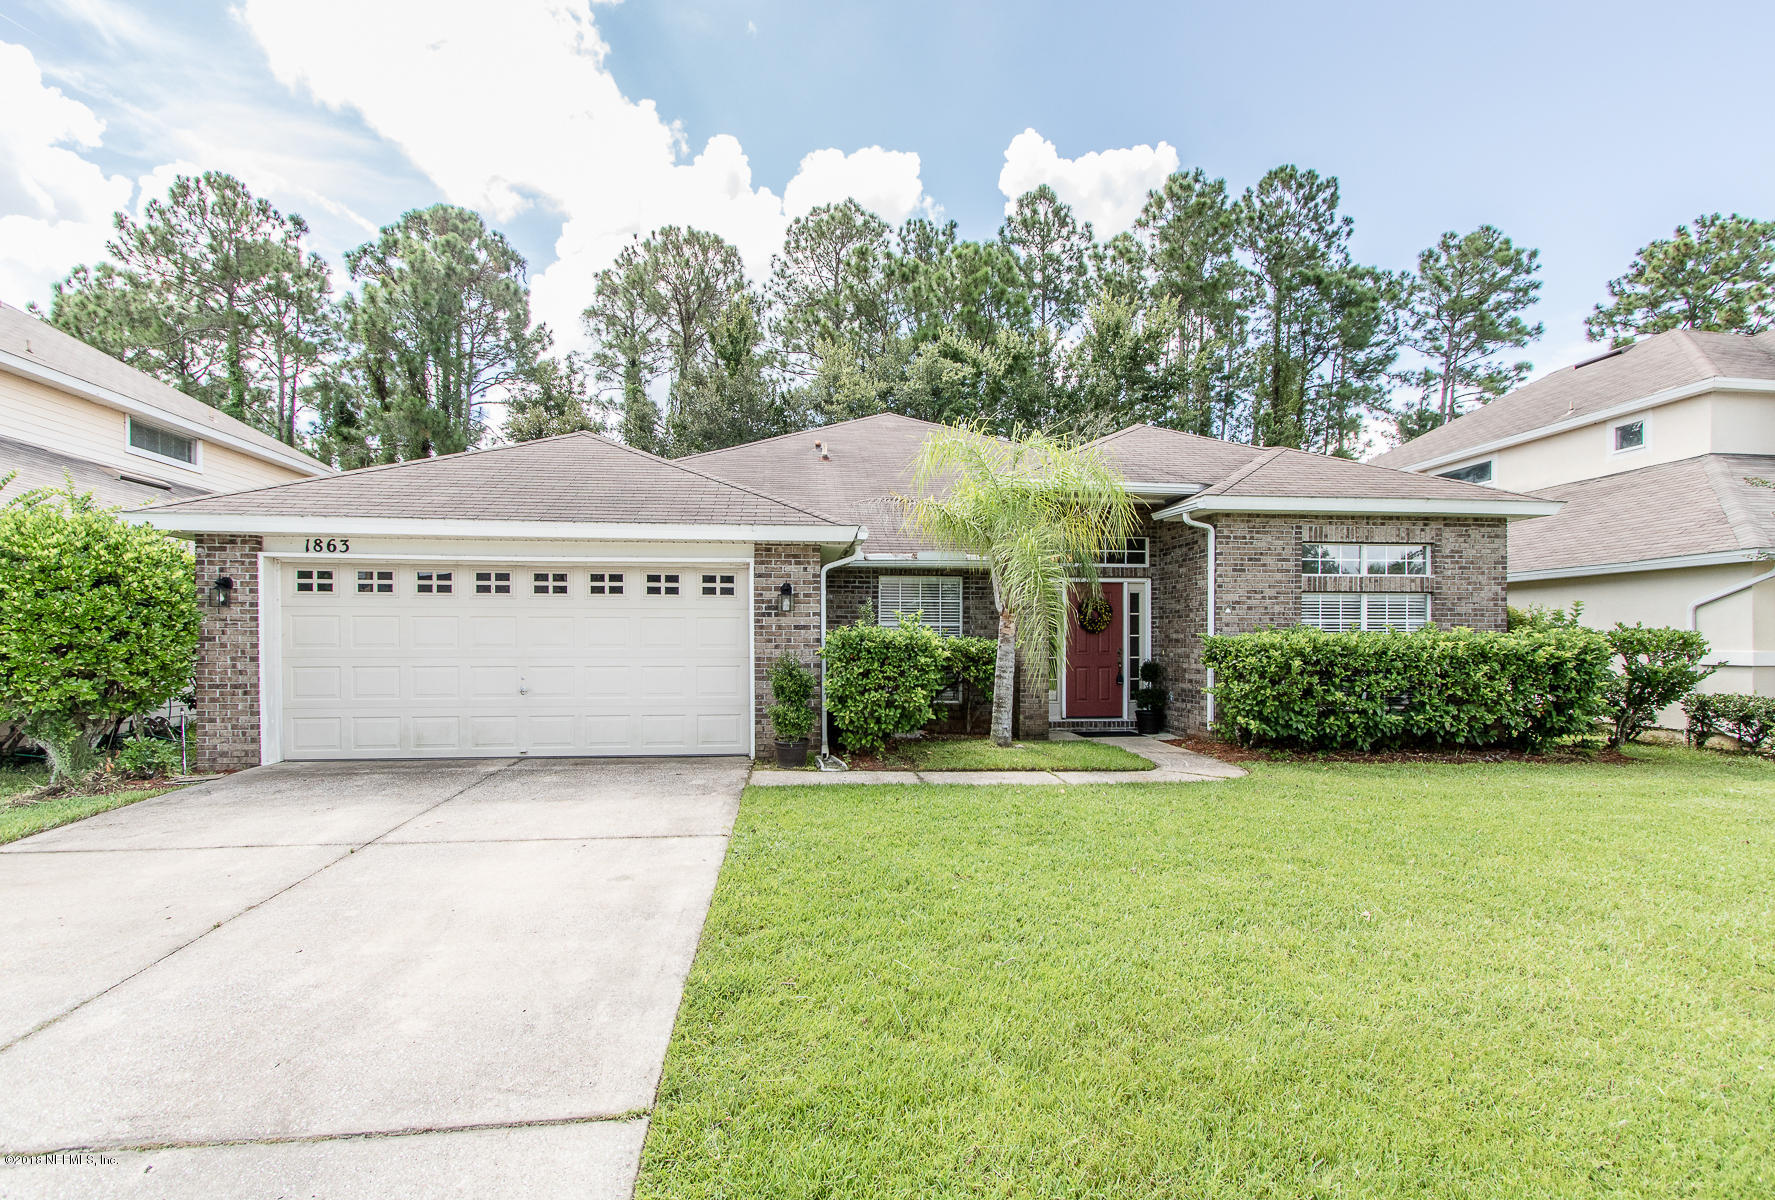 1863 CHATHAM VILLAGE, ORANGE PARK, FLORIDA 32003, 4 Bedrooms Bedrooms, ,3 BathroomsBathrooms,Residential - single family,For sale,CHATHAM VILLAGE,968284